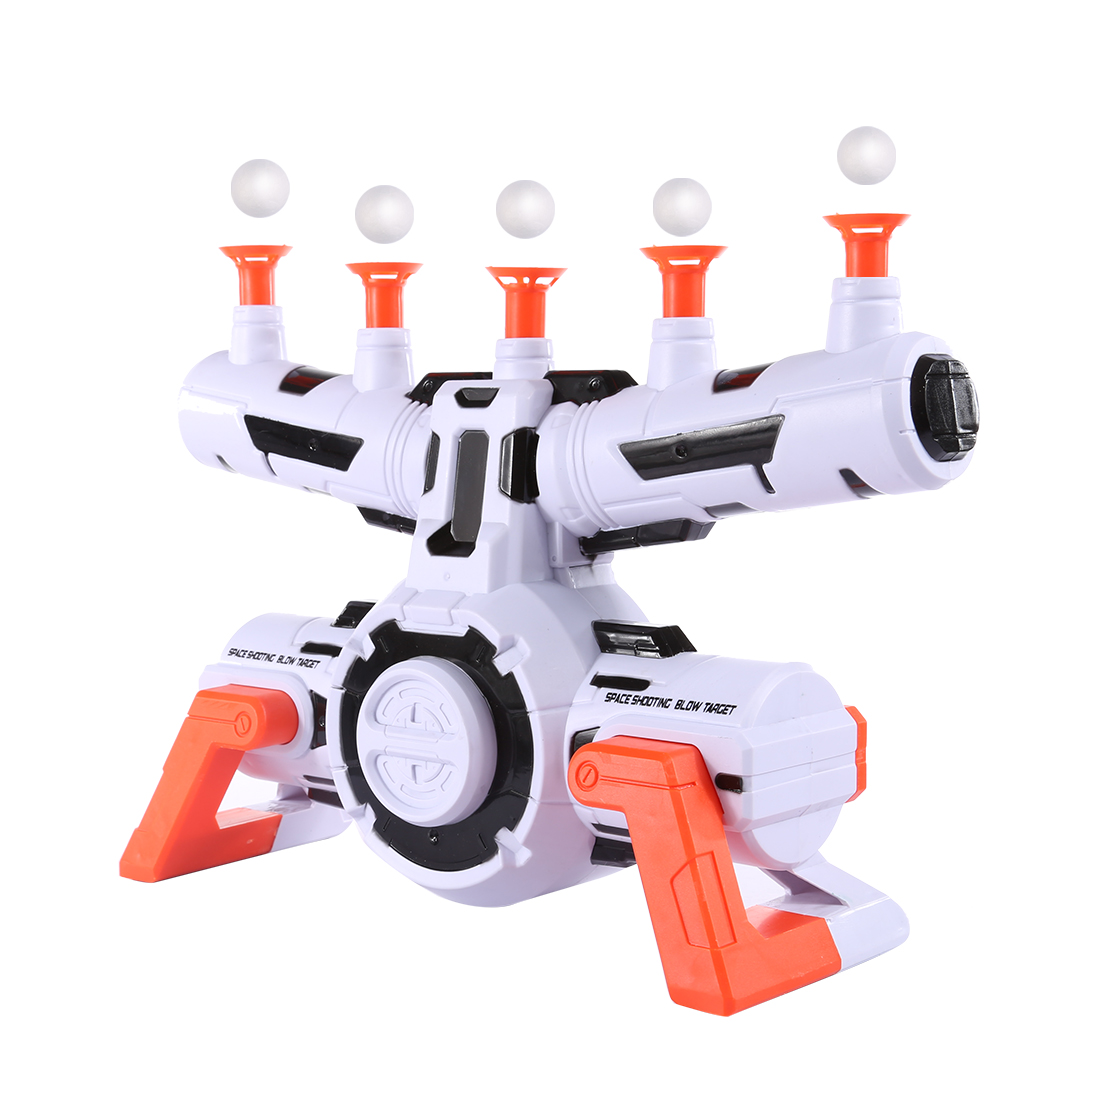 Water Gel Ball Shooting Target Electric Suspended Ball Dart Target Soft Bullet Shooting Aim Practice For Paintball Accessories